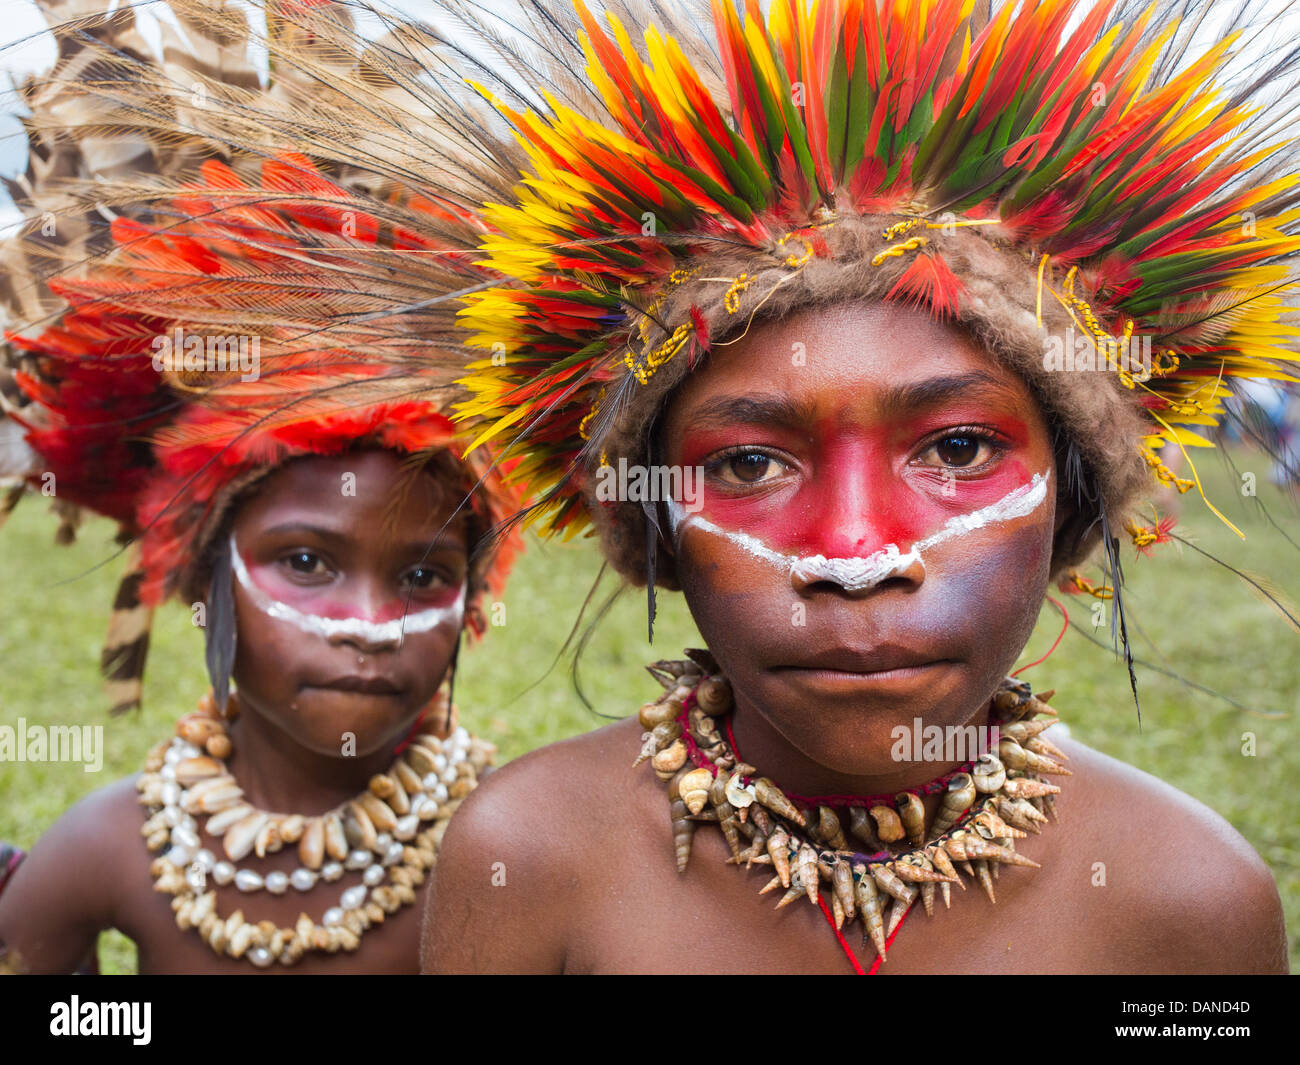 Children wearing a brightly coloured feather headdress made from lorikeet feathers, Goroka show, Papua New Guinea - Stock Image